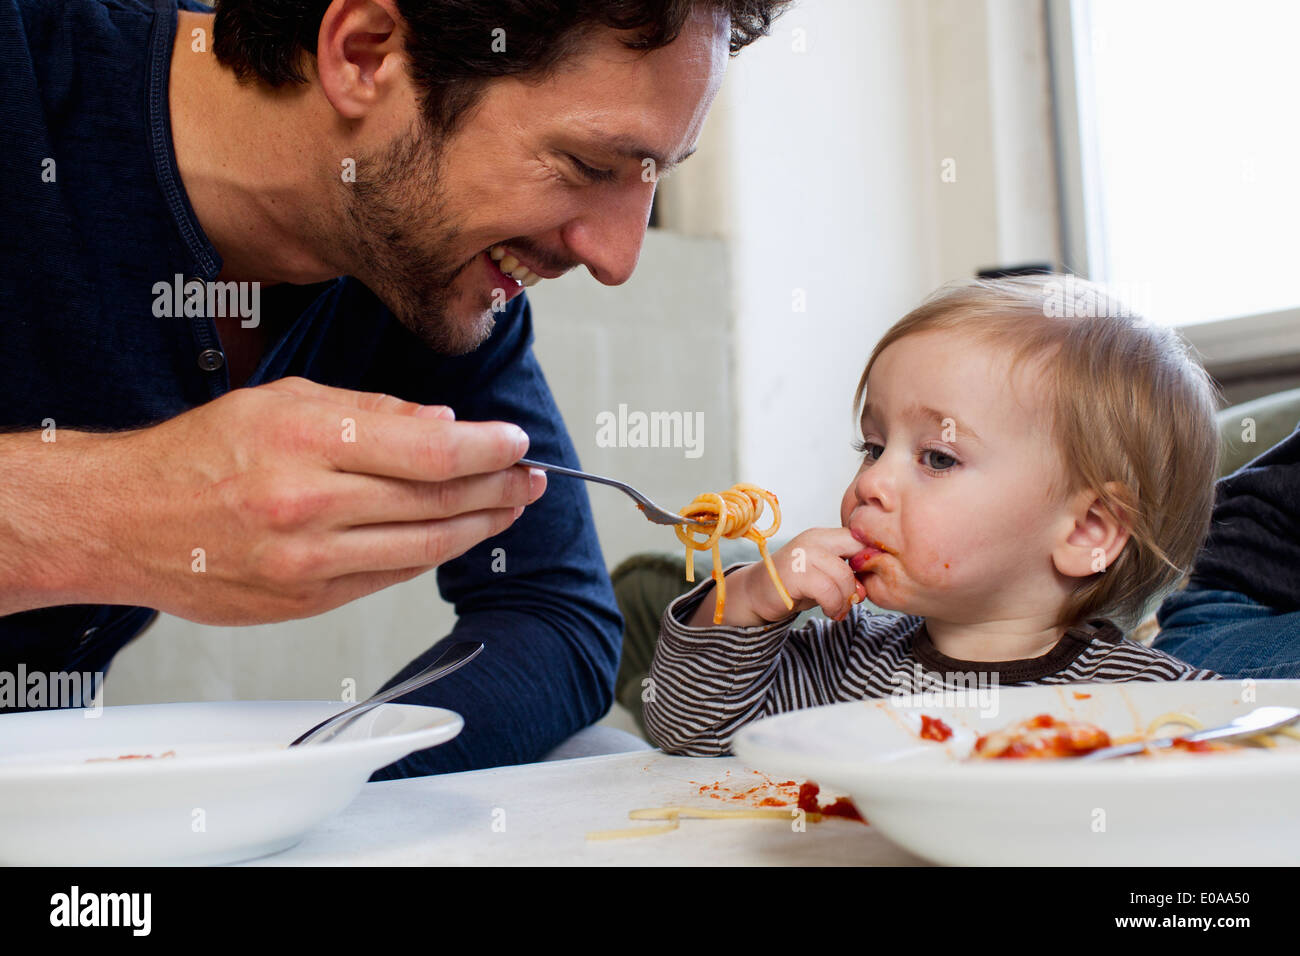 Père à l'âge d'un an d'alimentation spaghetti fille Photo Stock